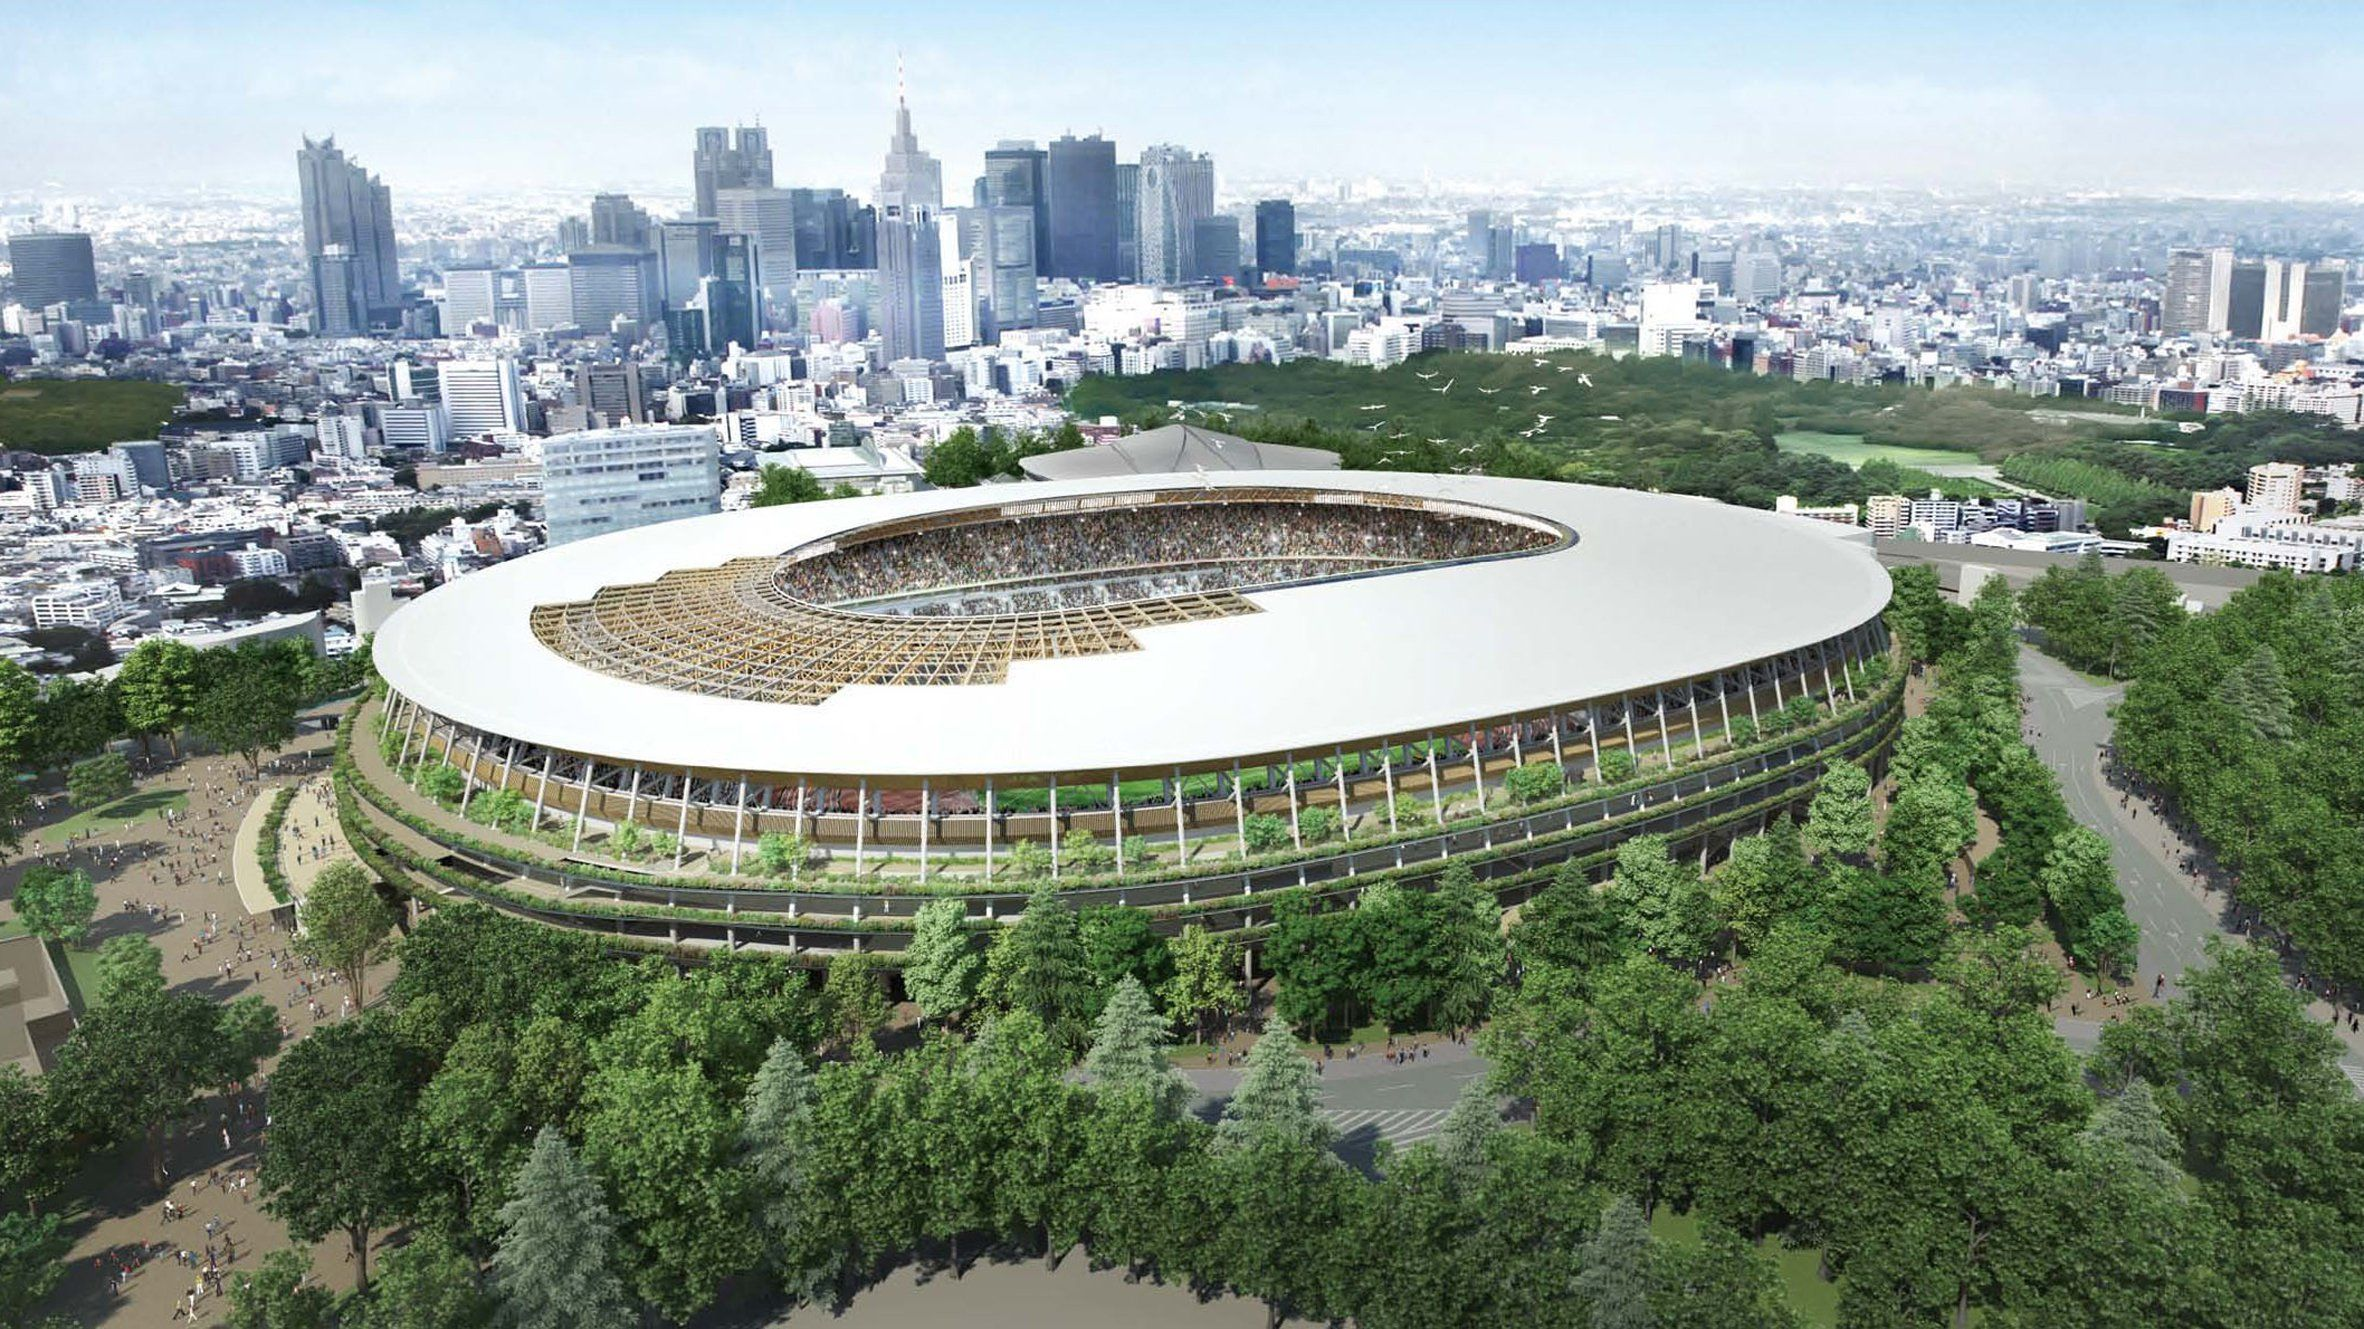 Rendering of Japan's 2020 National Stadium